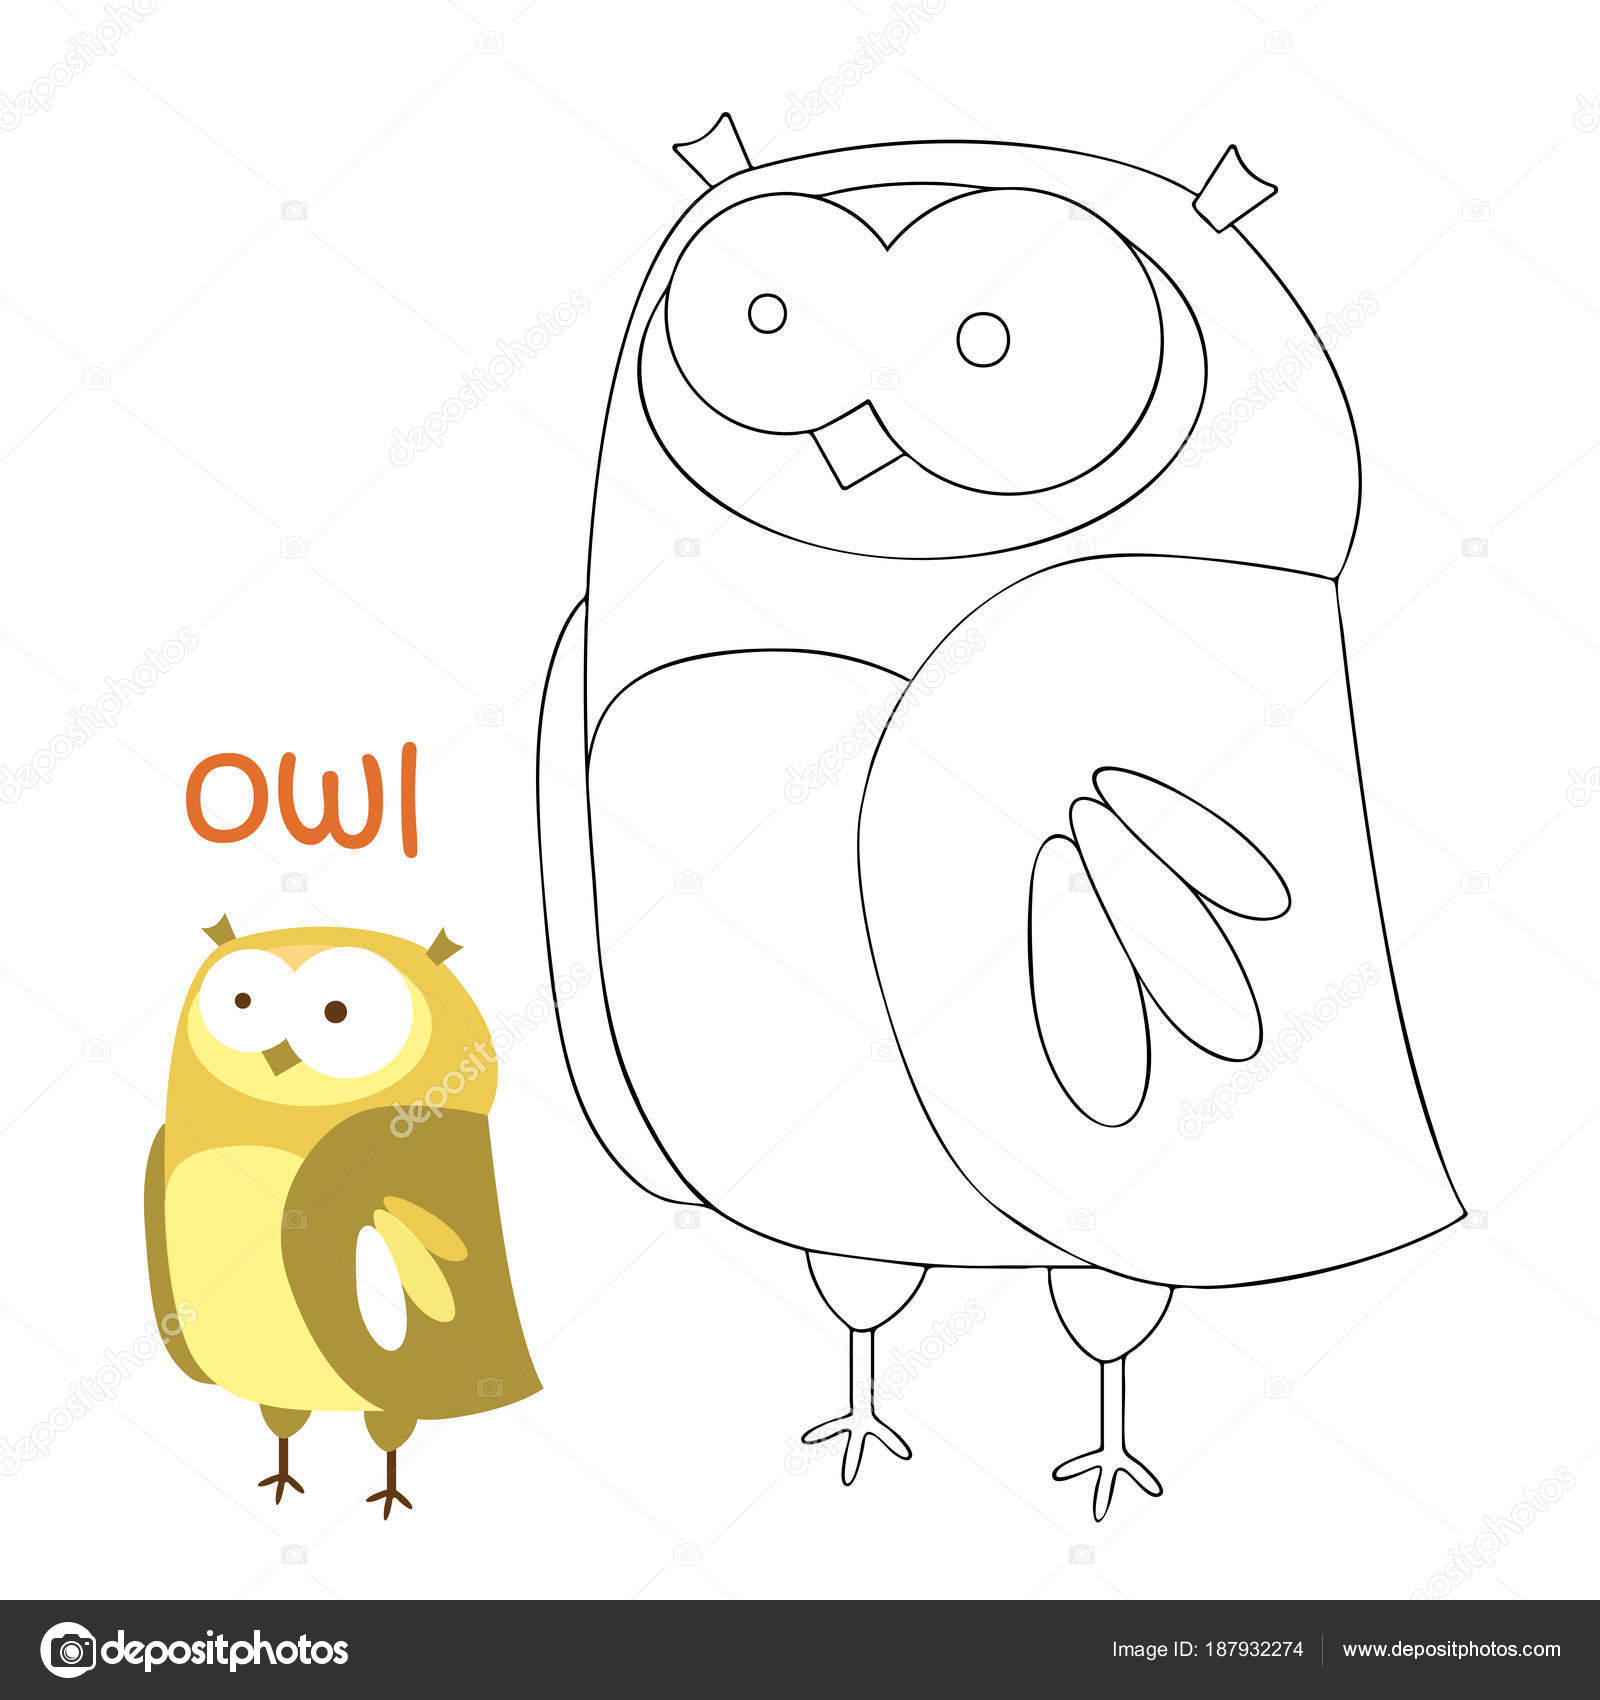 Kids coloring page - owl — Stock Vector © ollegN #187932274